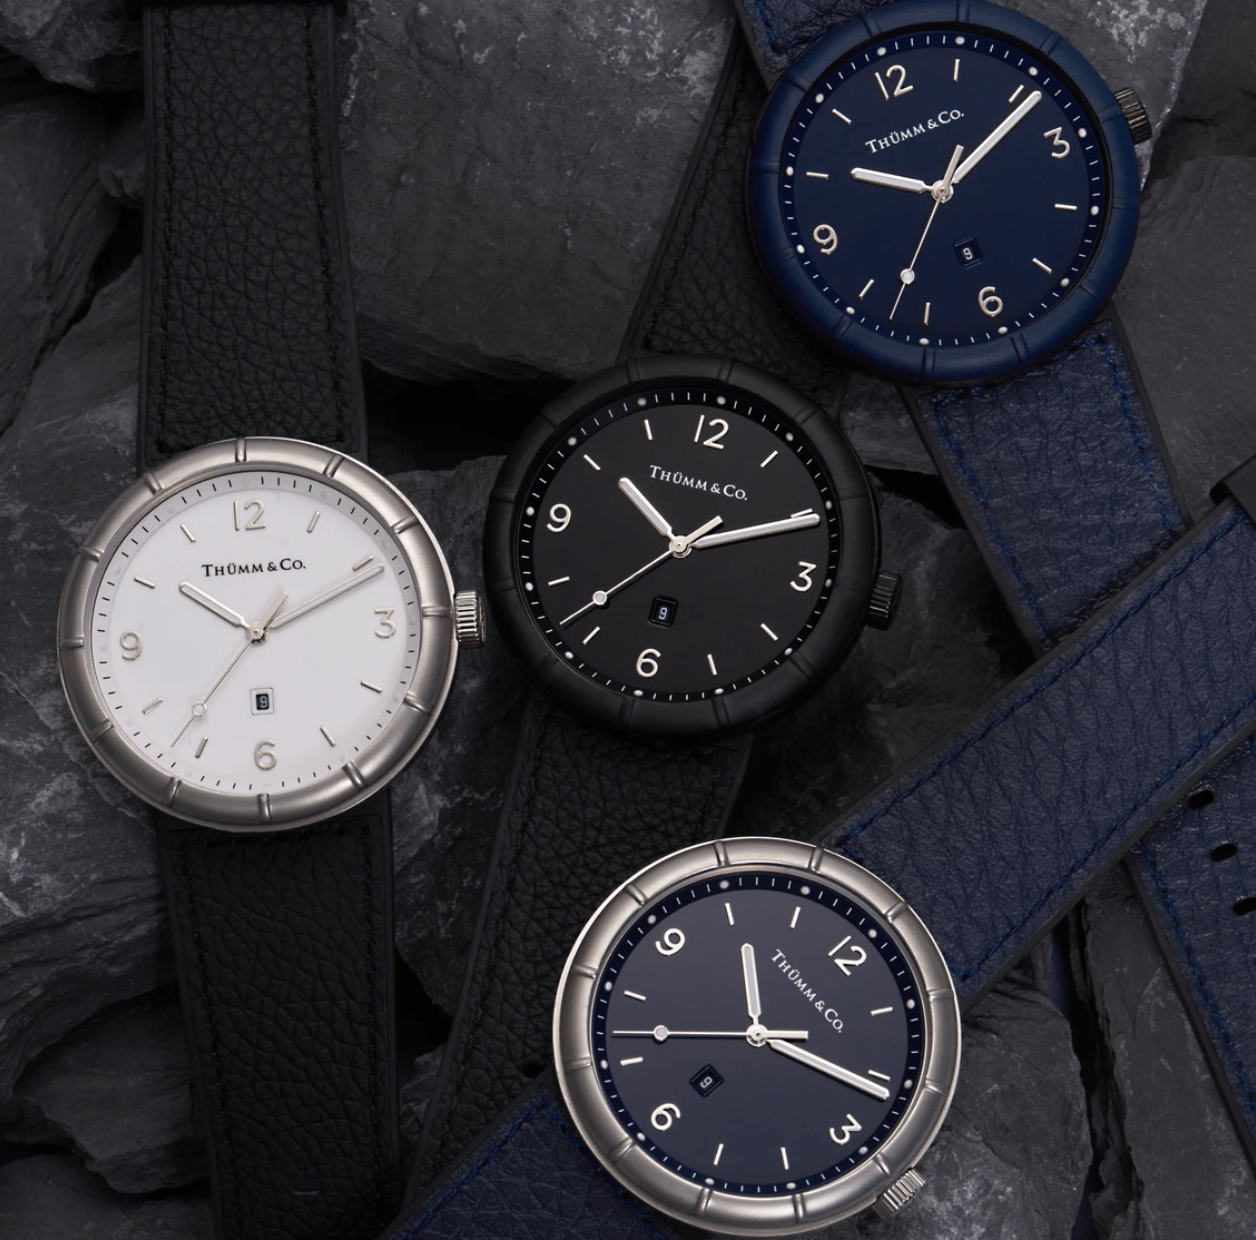 thumm & co watches